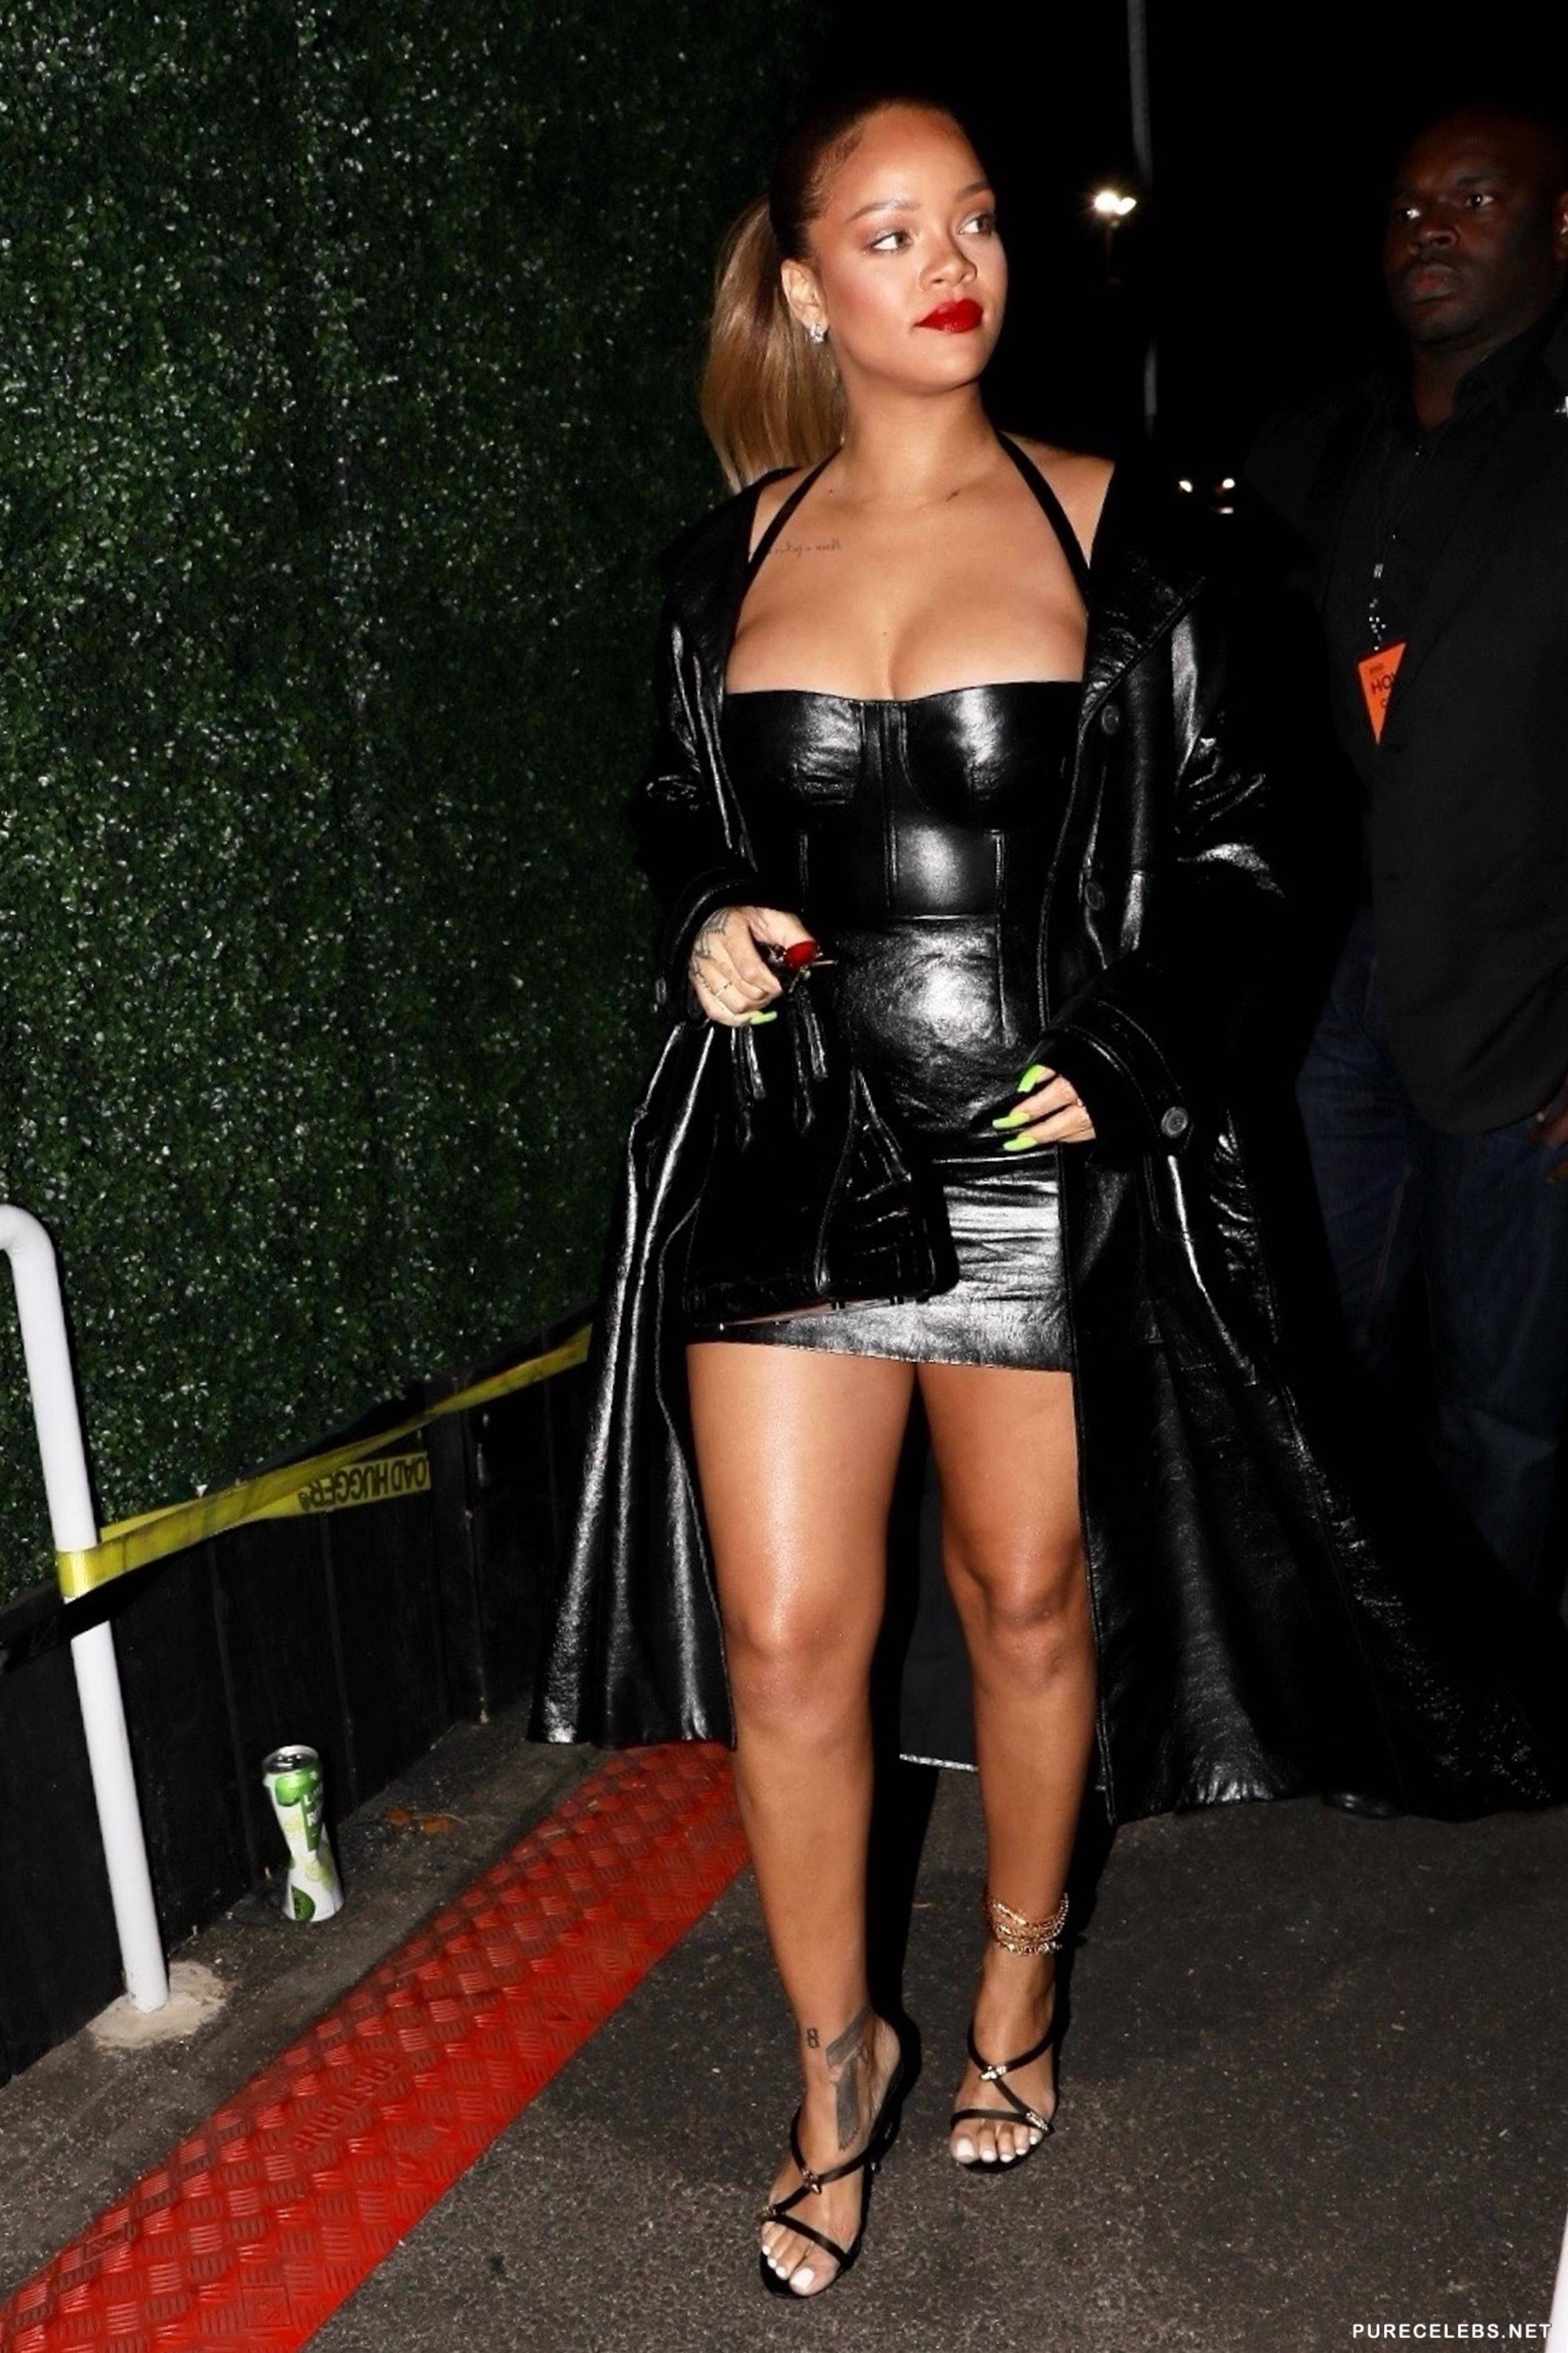 Rihanna Showing Great Cleavage At The Forum in Inglewood